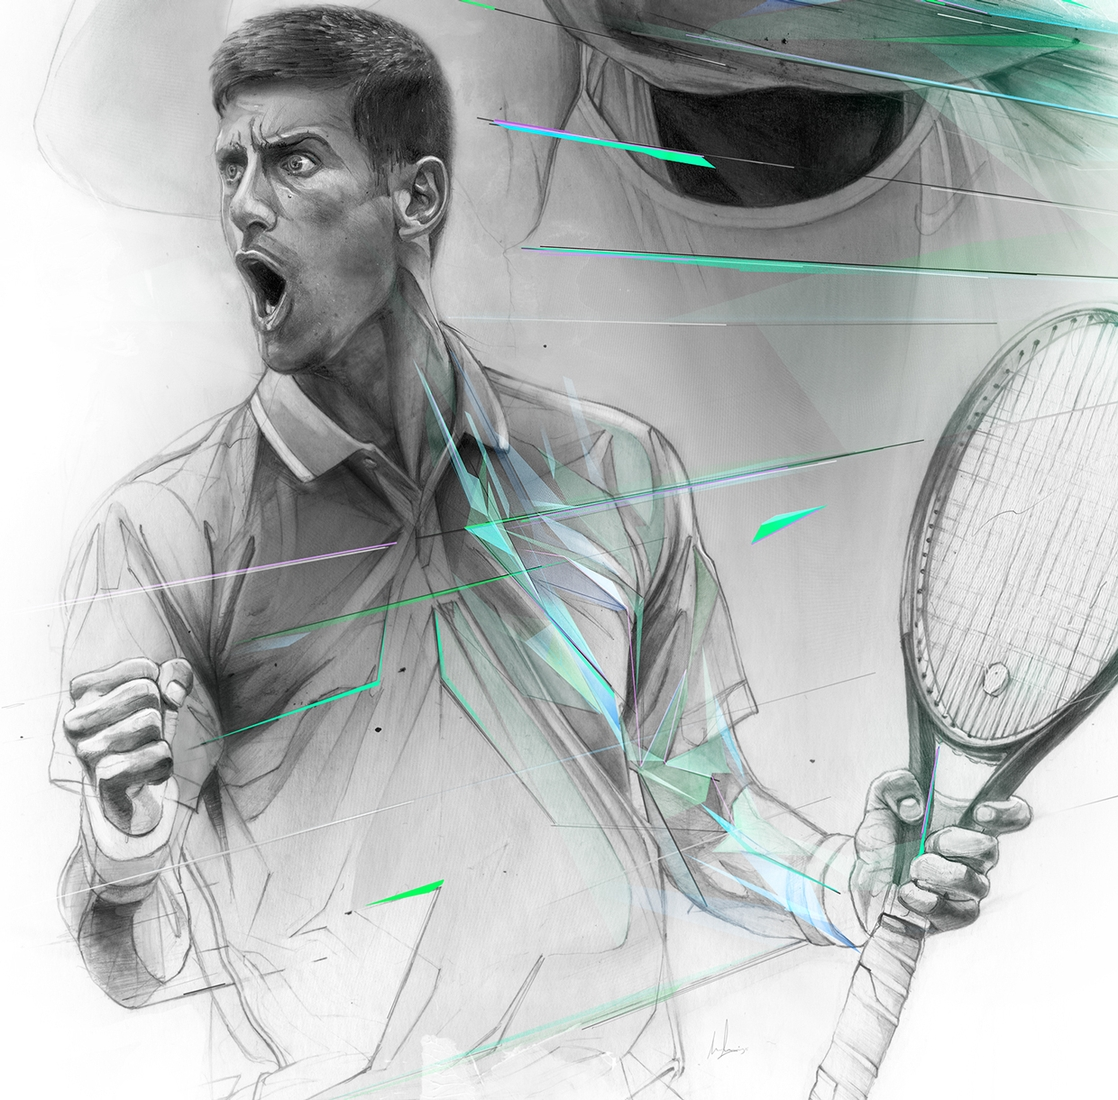 14-Novak-Djokovic-Alexis-Marcou-Traditional-and-Digital-Celebrity-Drawings-www-designstack-co